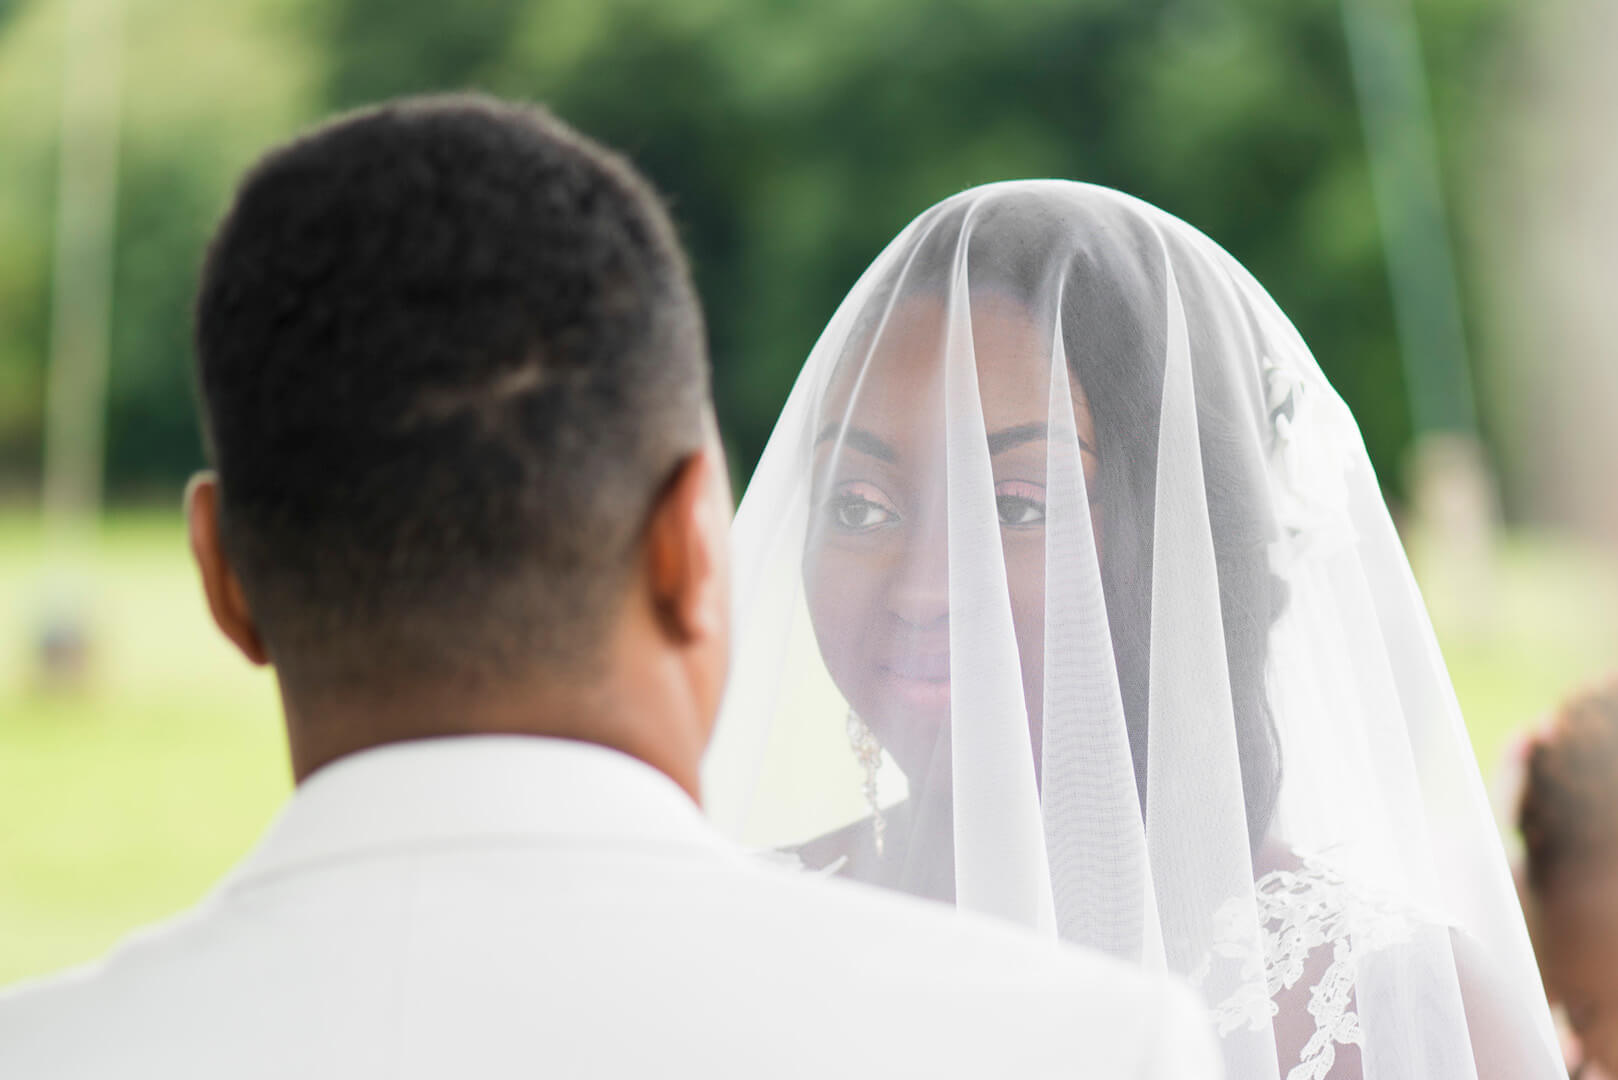 bride wearing a veil about to exchange vows with groom